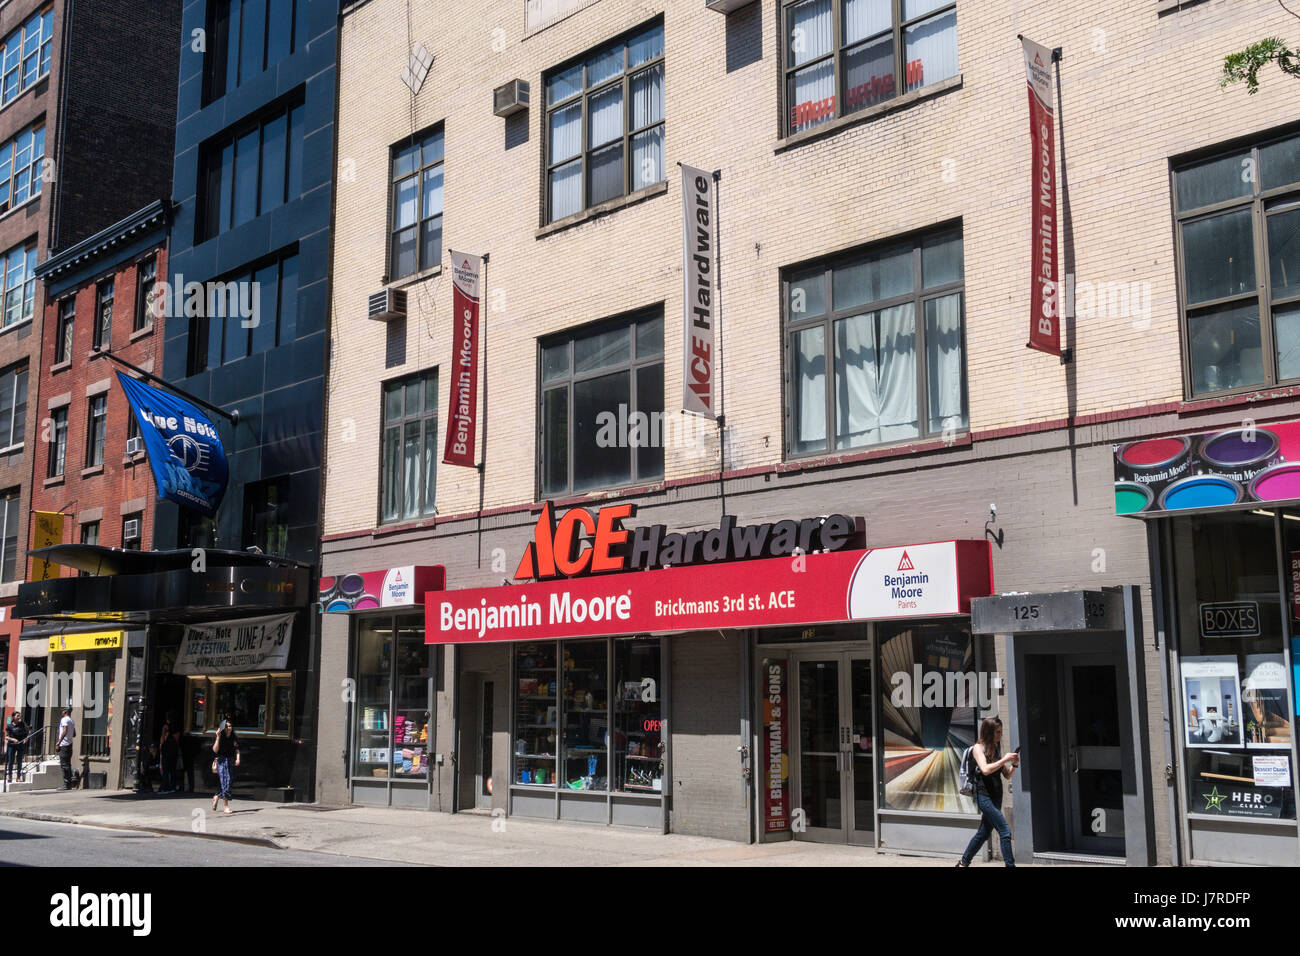 Ace Hardware Store in Greenwich Village, NYC, USA - Stock Image